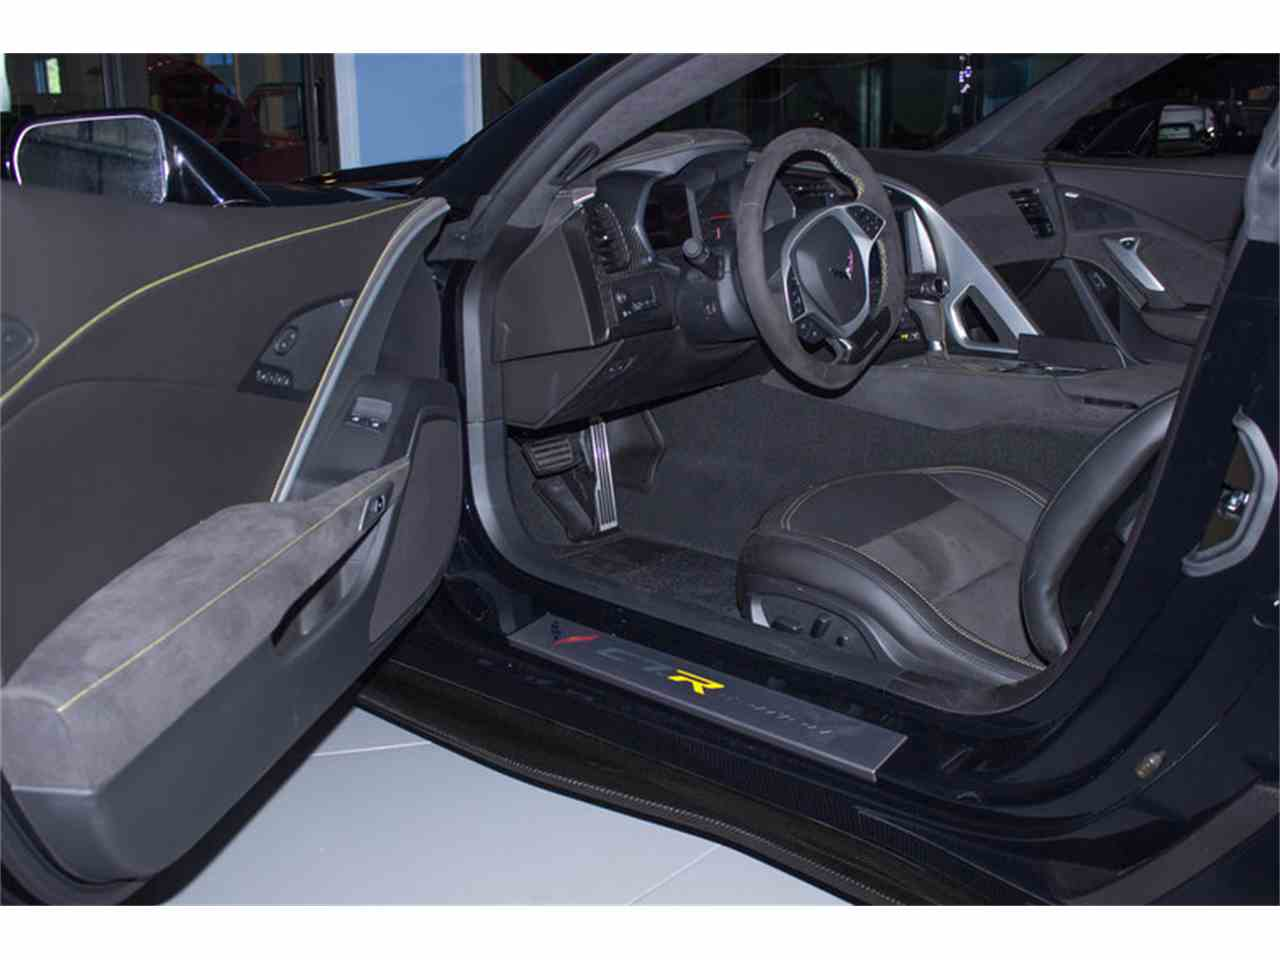 Large Picture of '16 Chevrolet Corvette Z06 located in Florida - $99,997.00 - M7FW